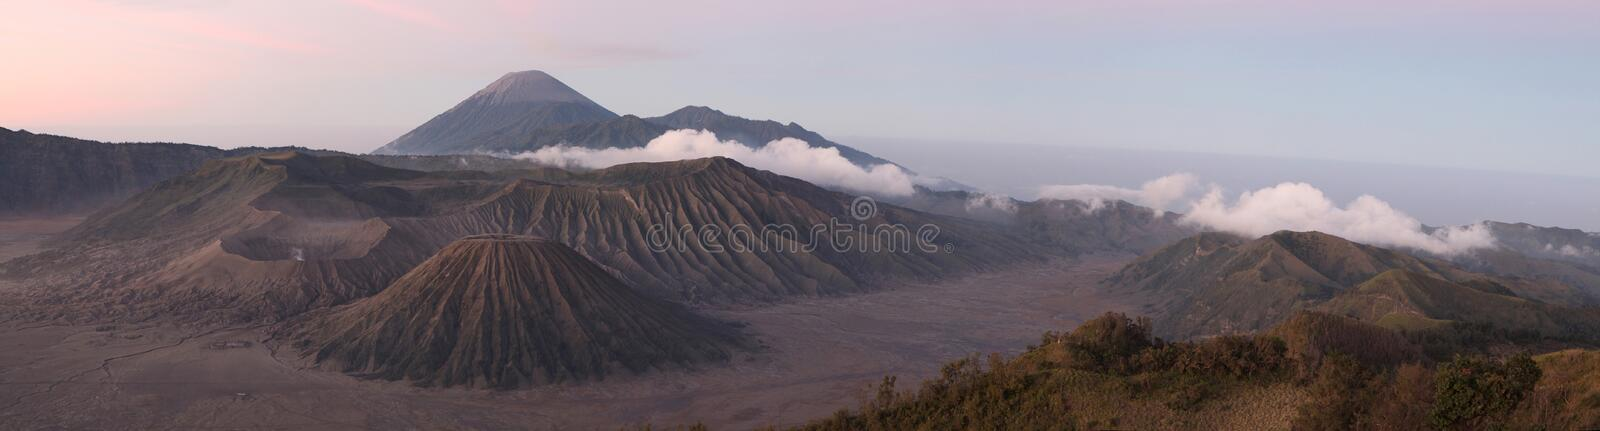 Sunrise over Mount Bromo and the Tengger Caldera in East Java, I. Sunrise over Mount Bromo (2,329 m) and the Tengger Caldera in East Java, Indonesia. Panorama stock images